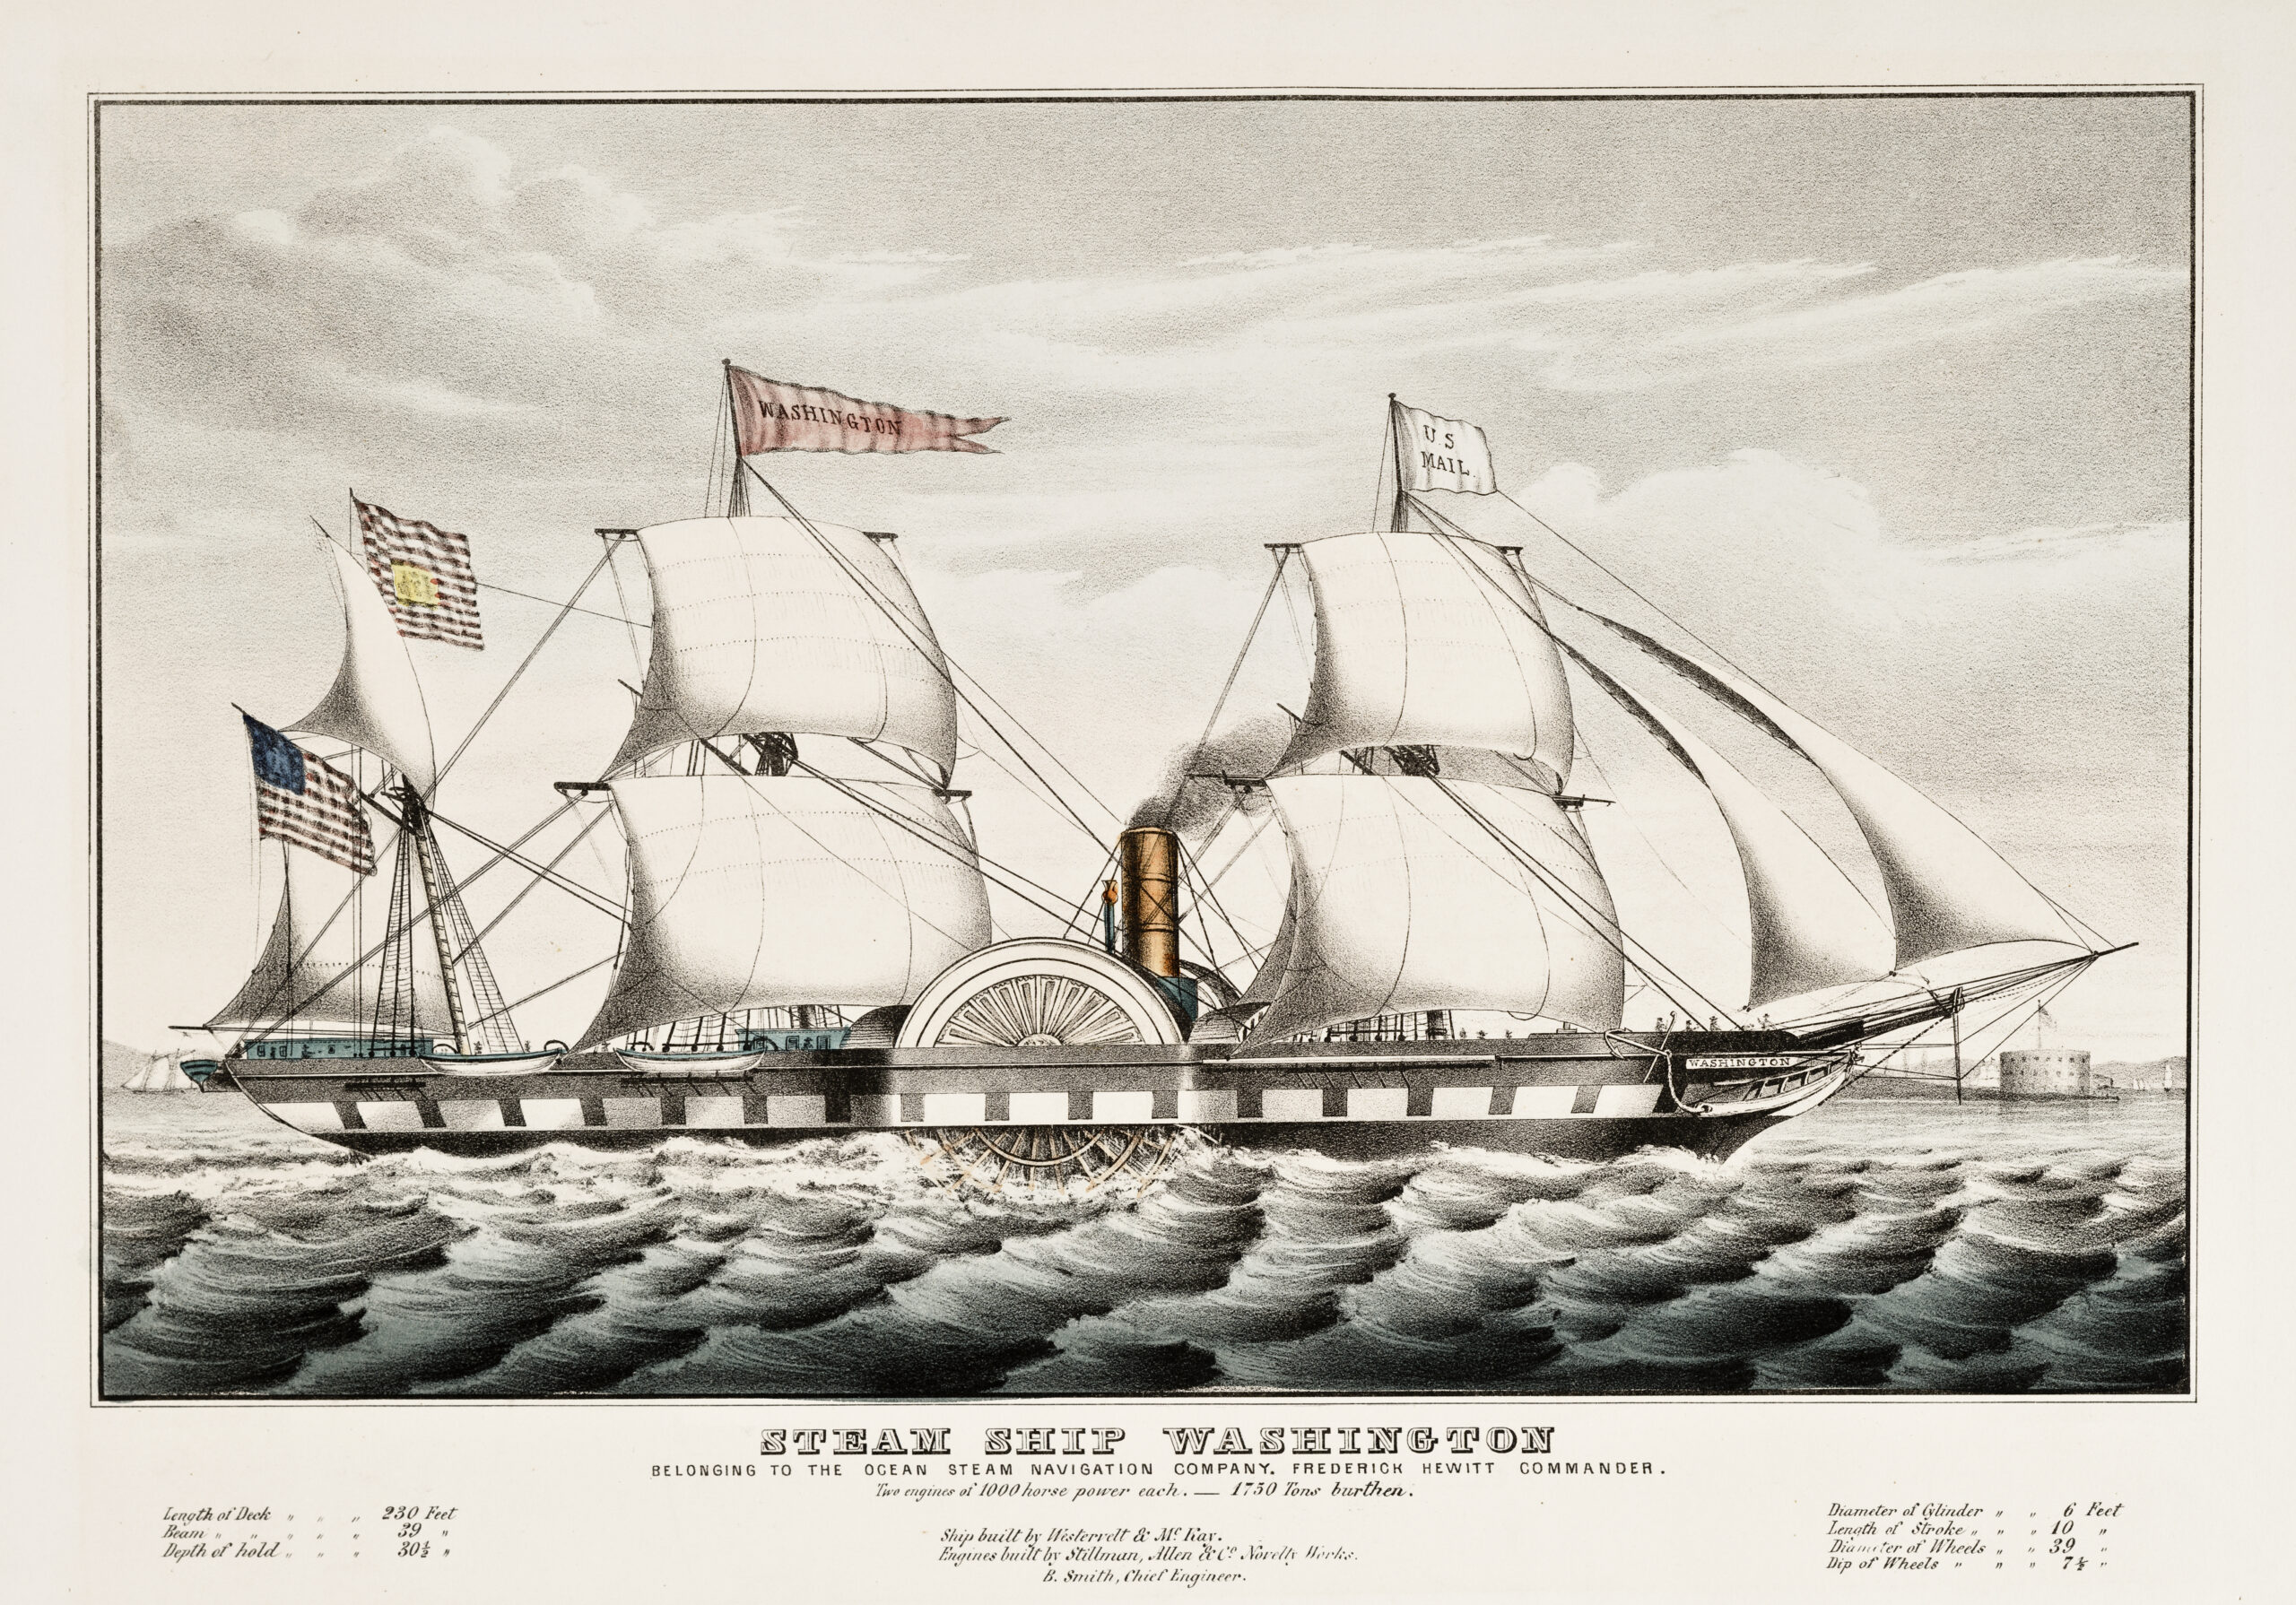 Old illustration of the steamship Washington. By Currier, publ. in New York, 1847